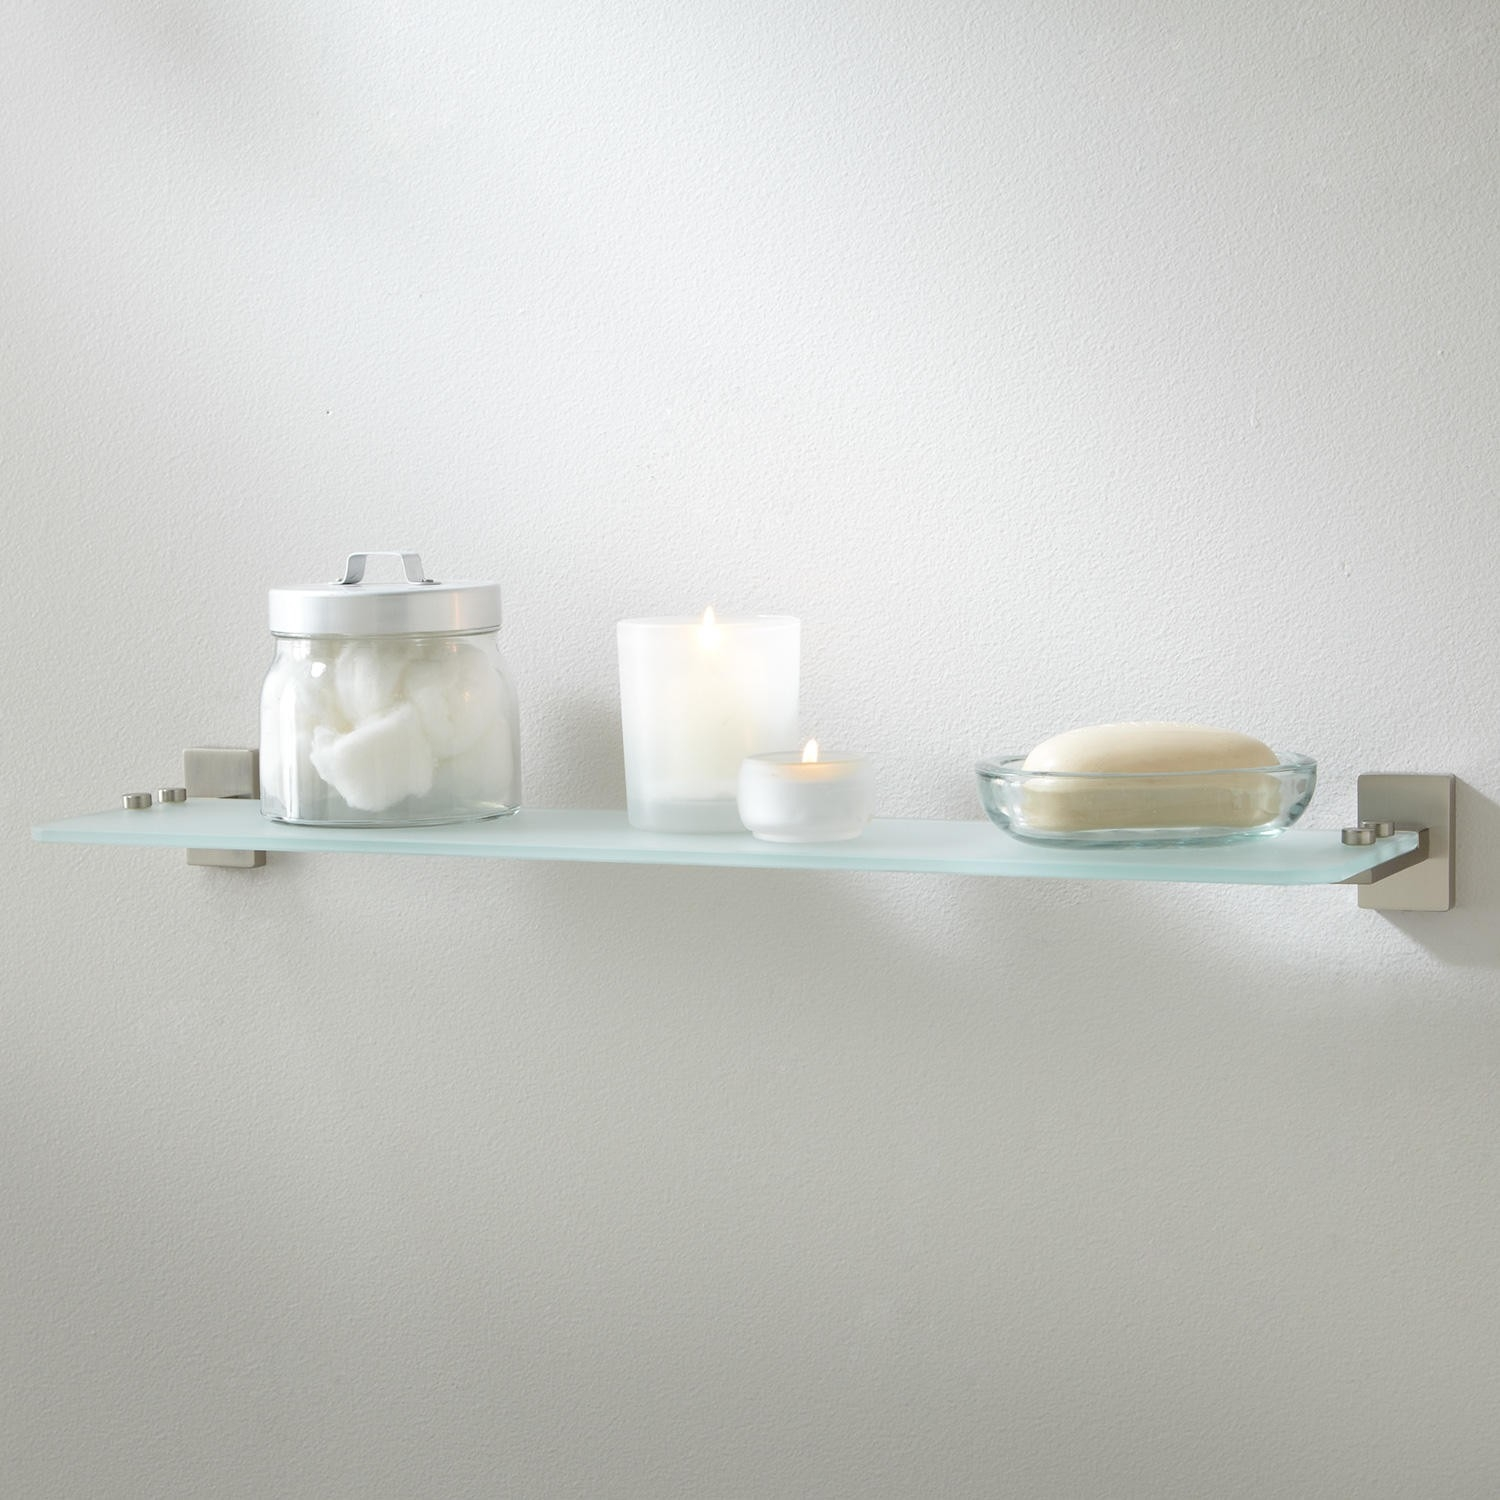 12 Inspirations of Frosted Glass Shelves